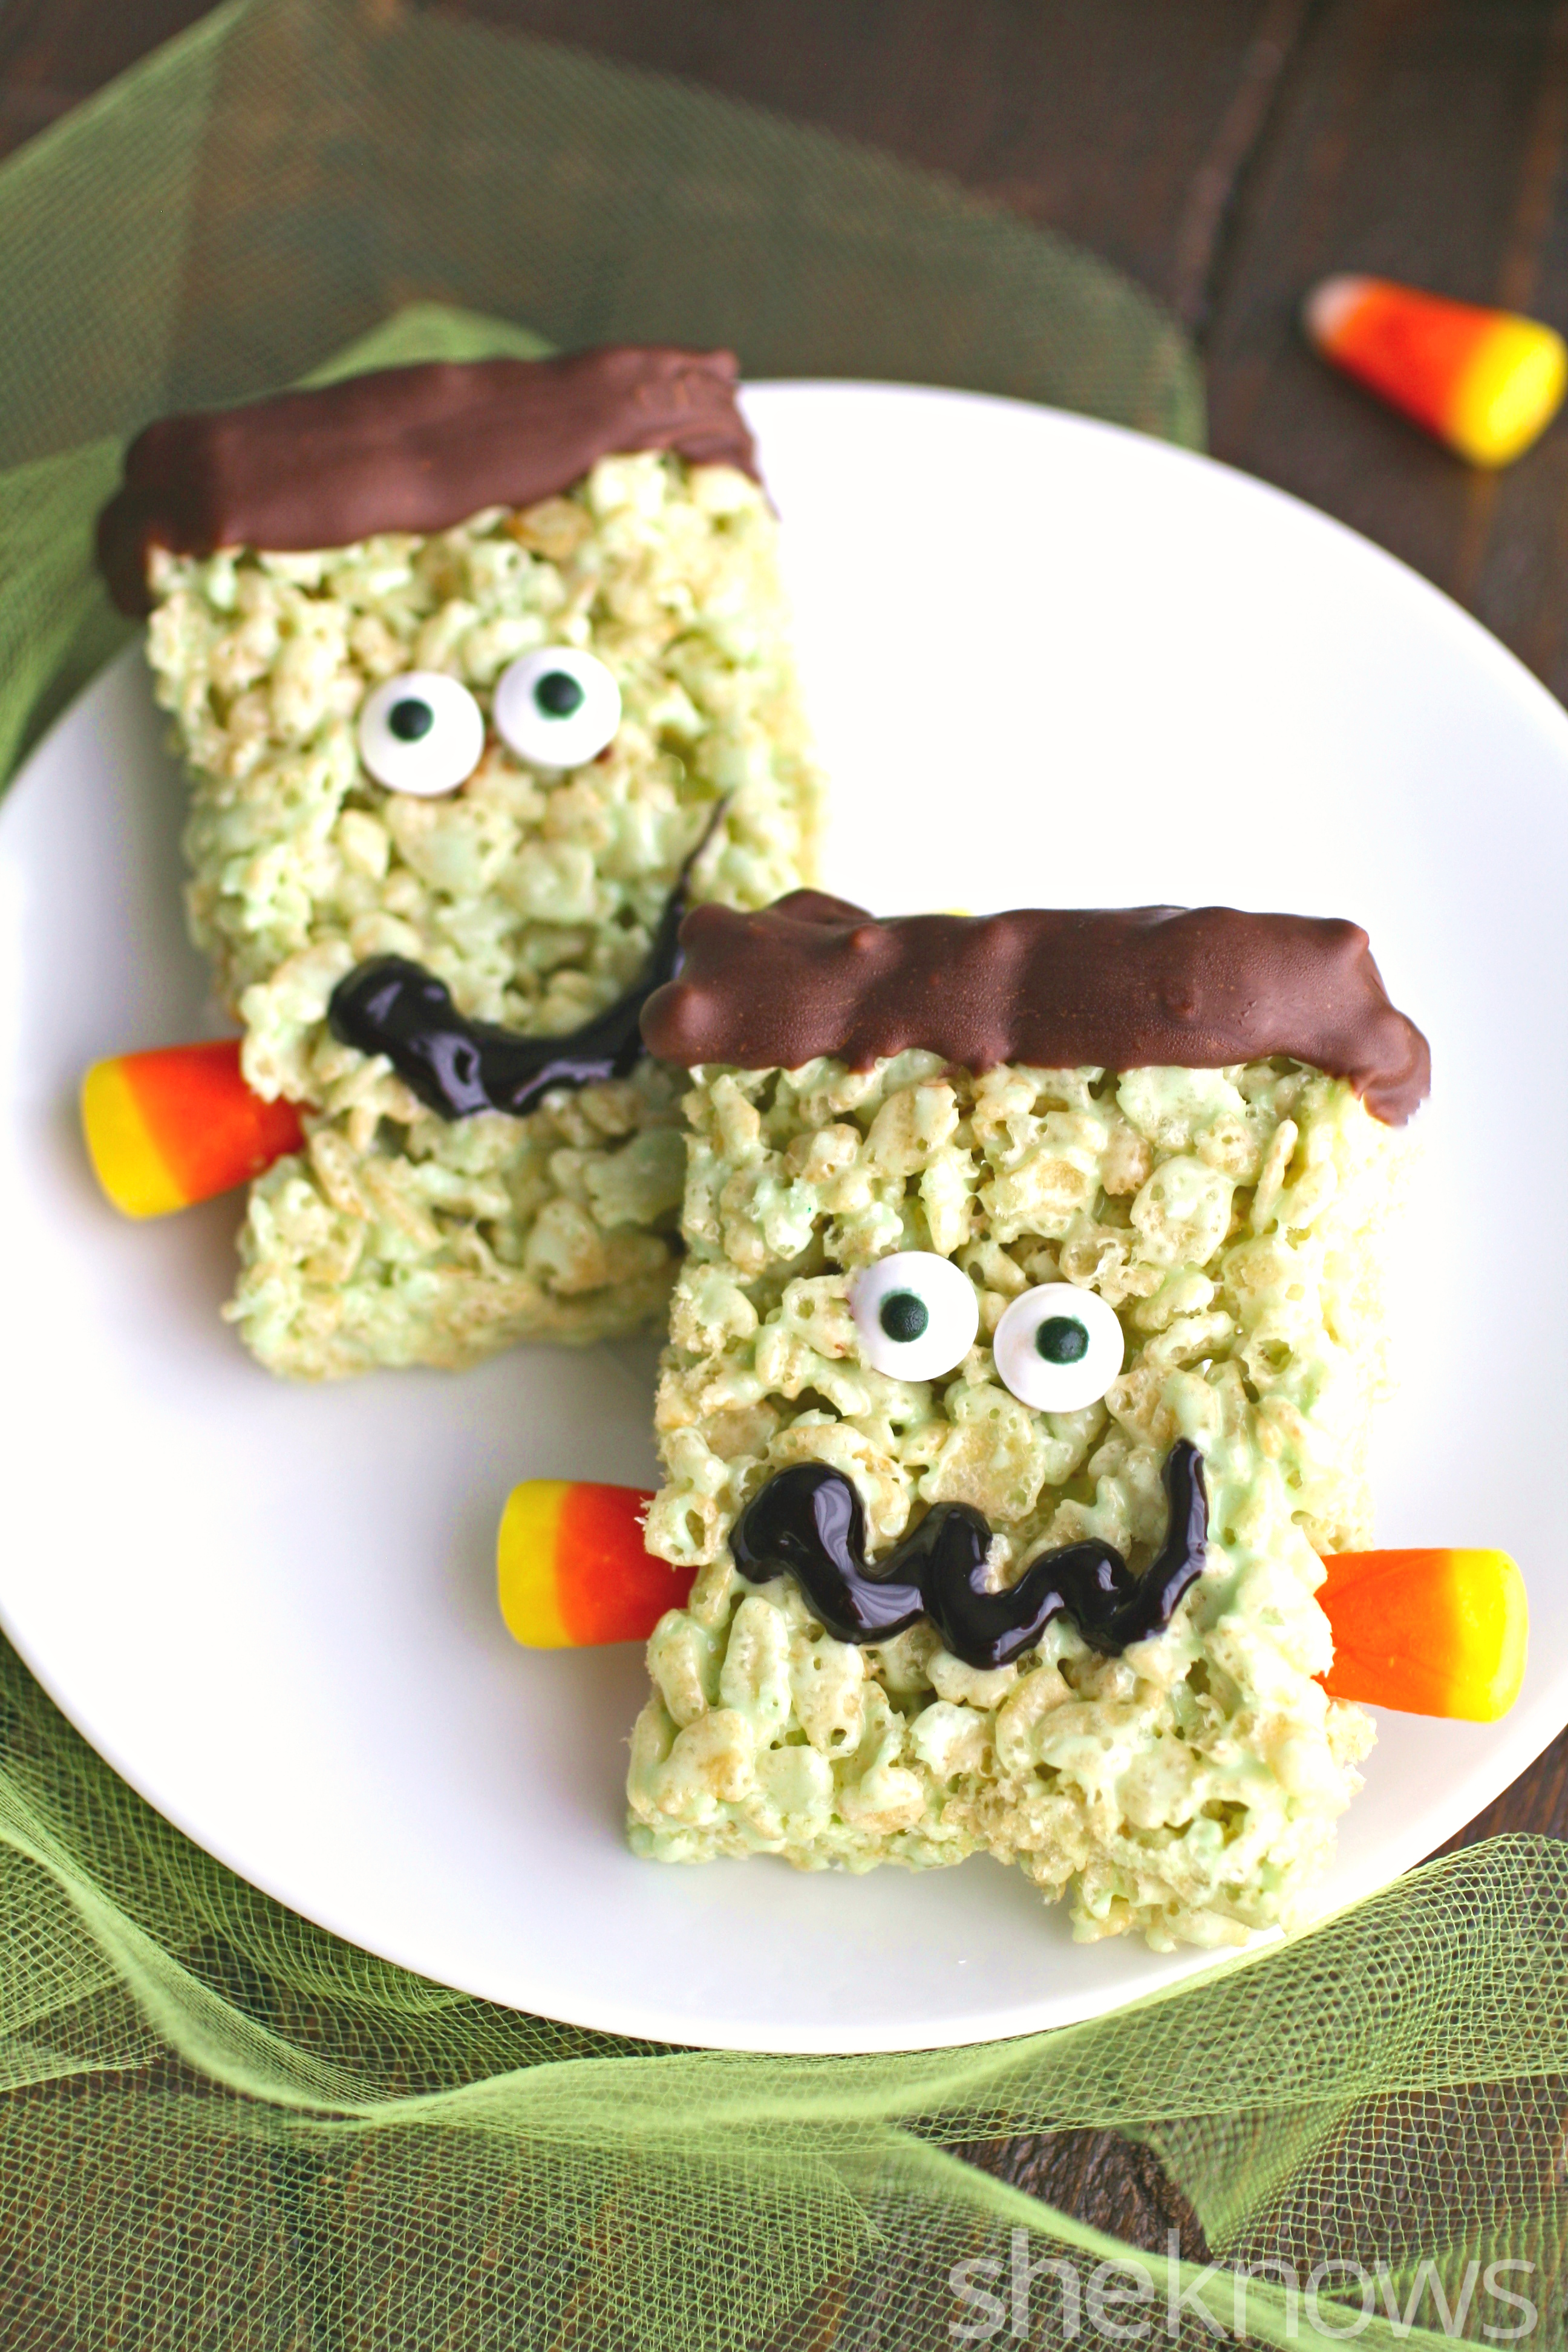 Add these treats to your Halloween get together for a monstrously good time!